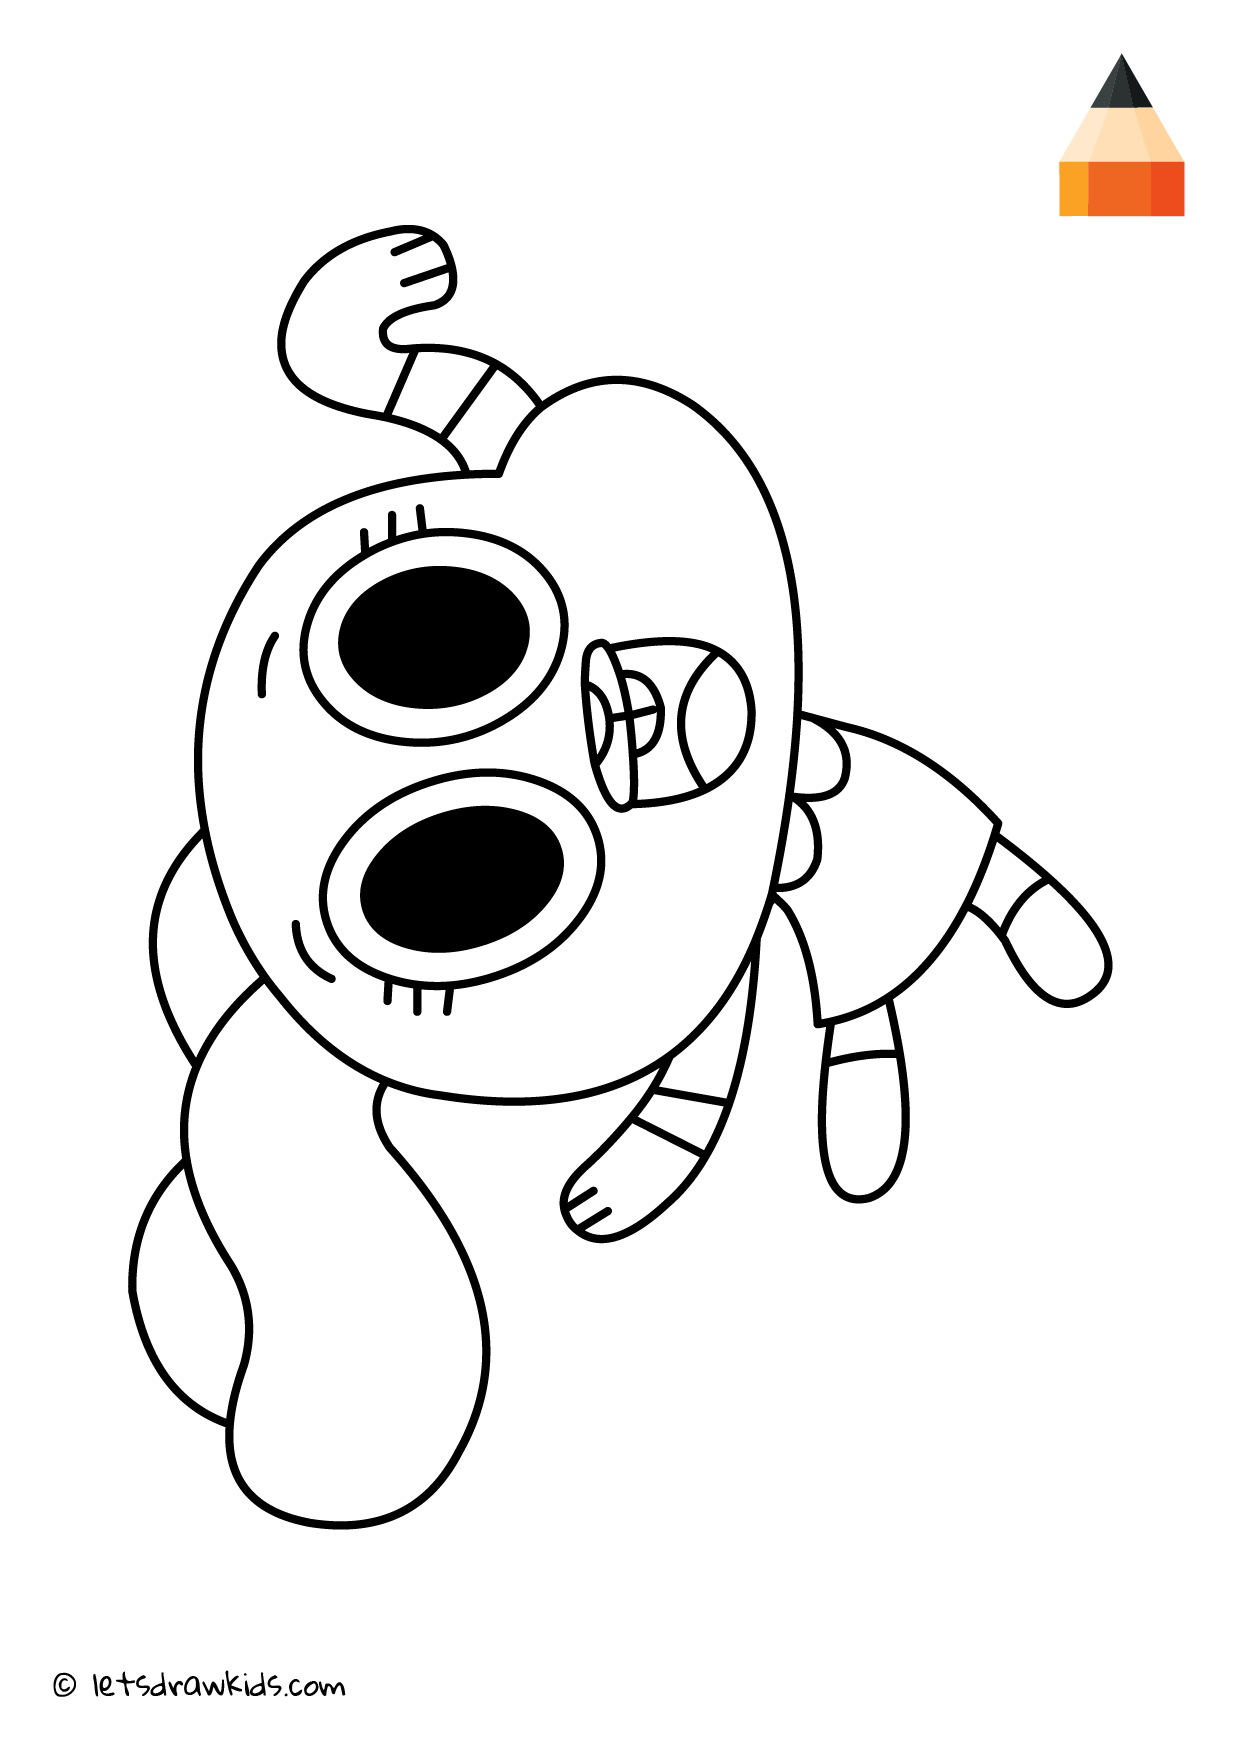 Coloring Page Anais Drawings Coloring Pages Free Coloring Pages